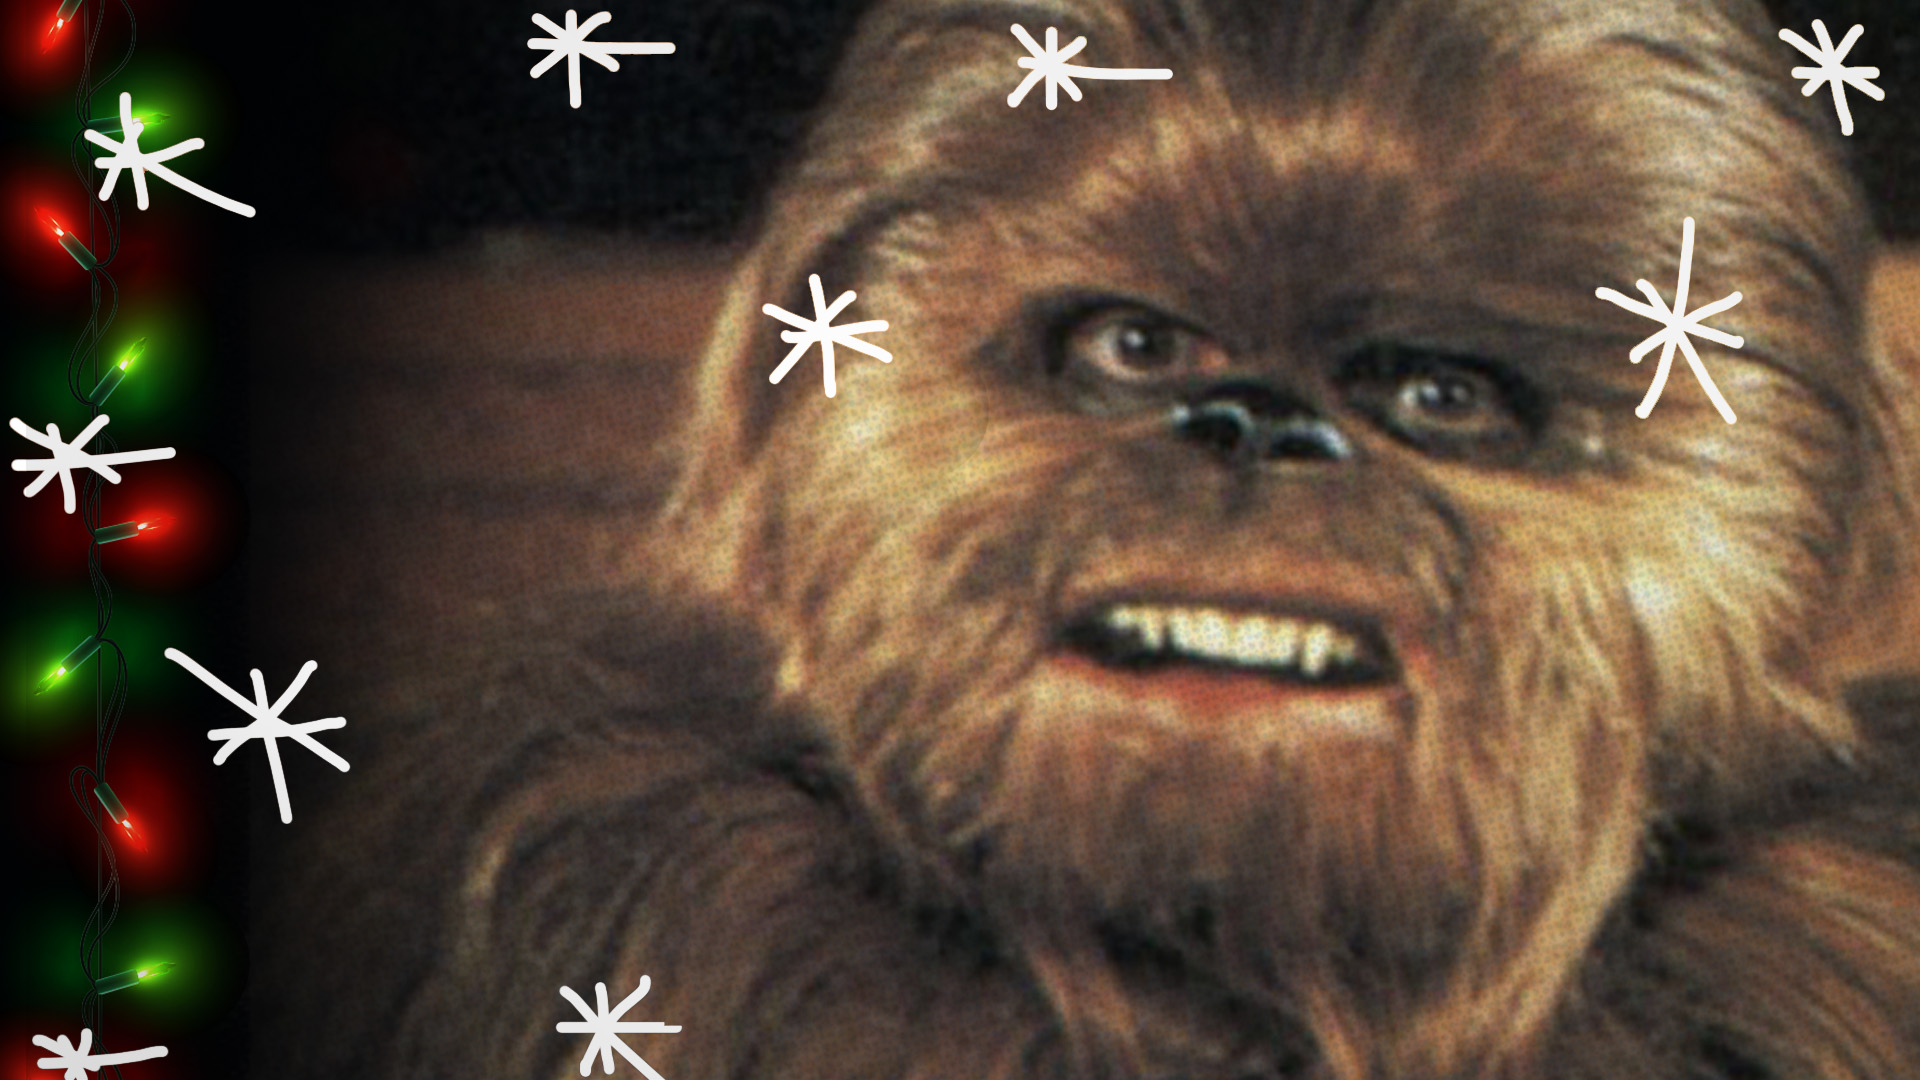 Chewbacca's son Lumpy in the Holiday Special.